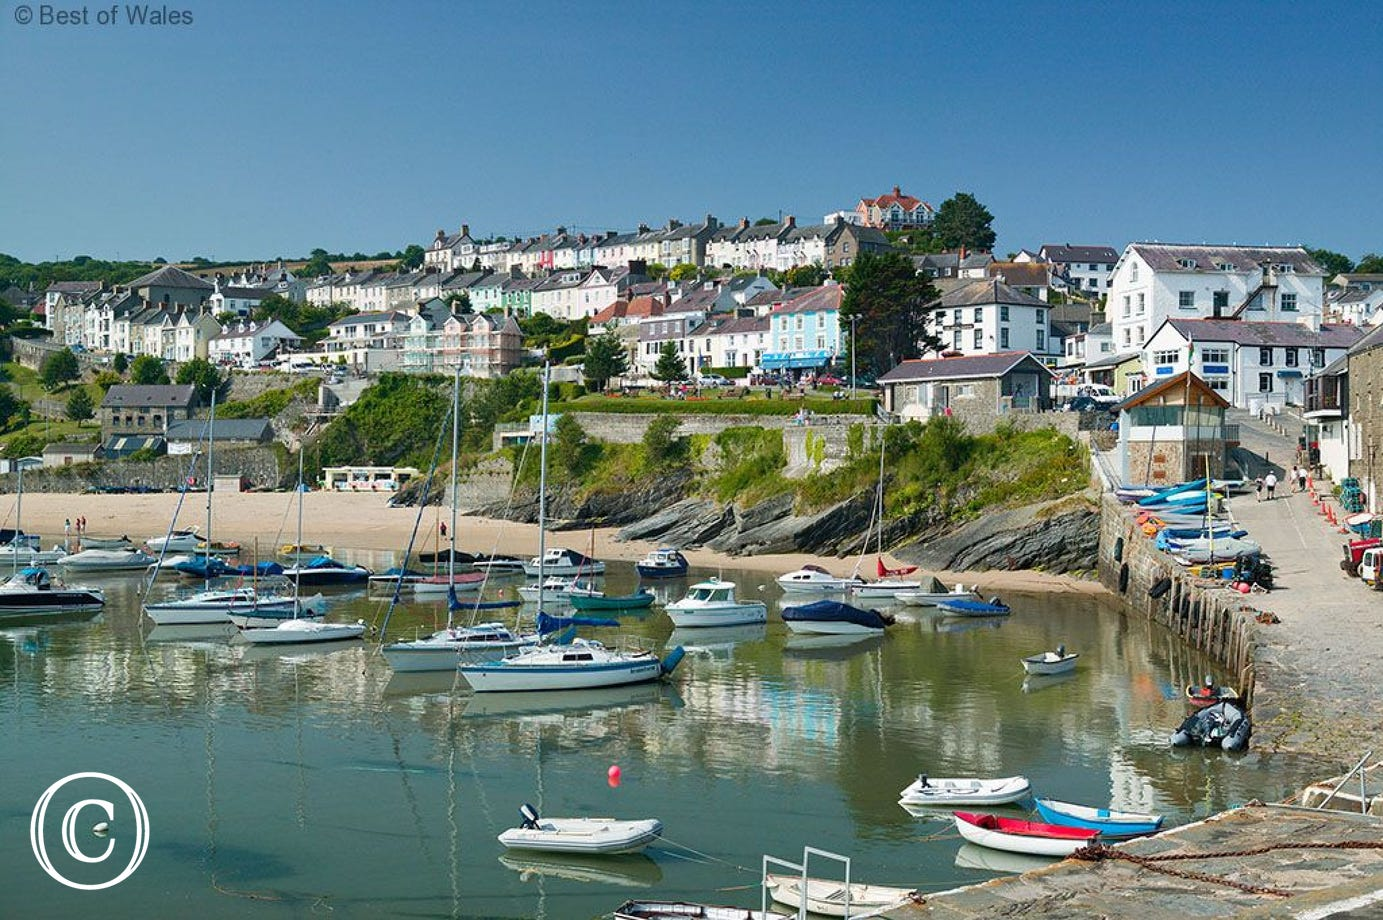 New quay - enjoy the beach or book a dolphin trip from harbour